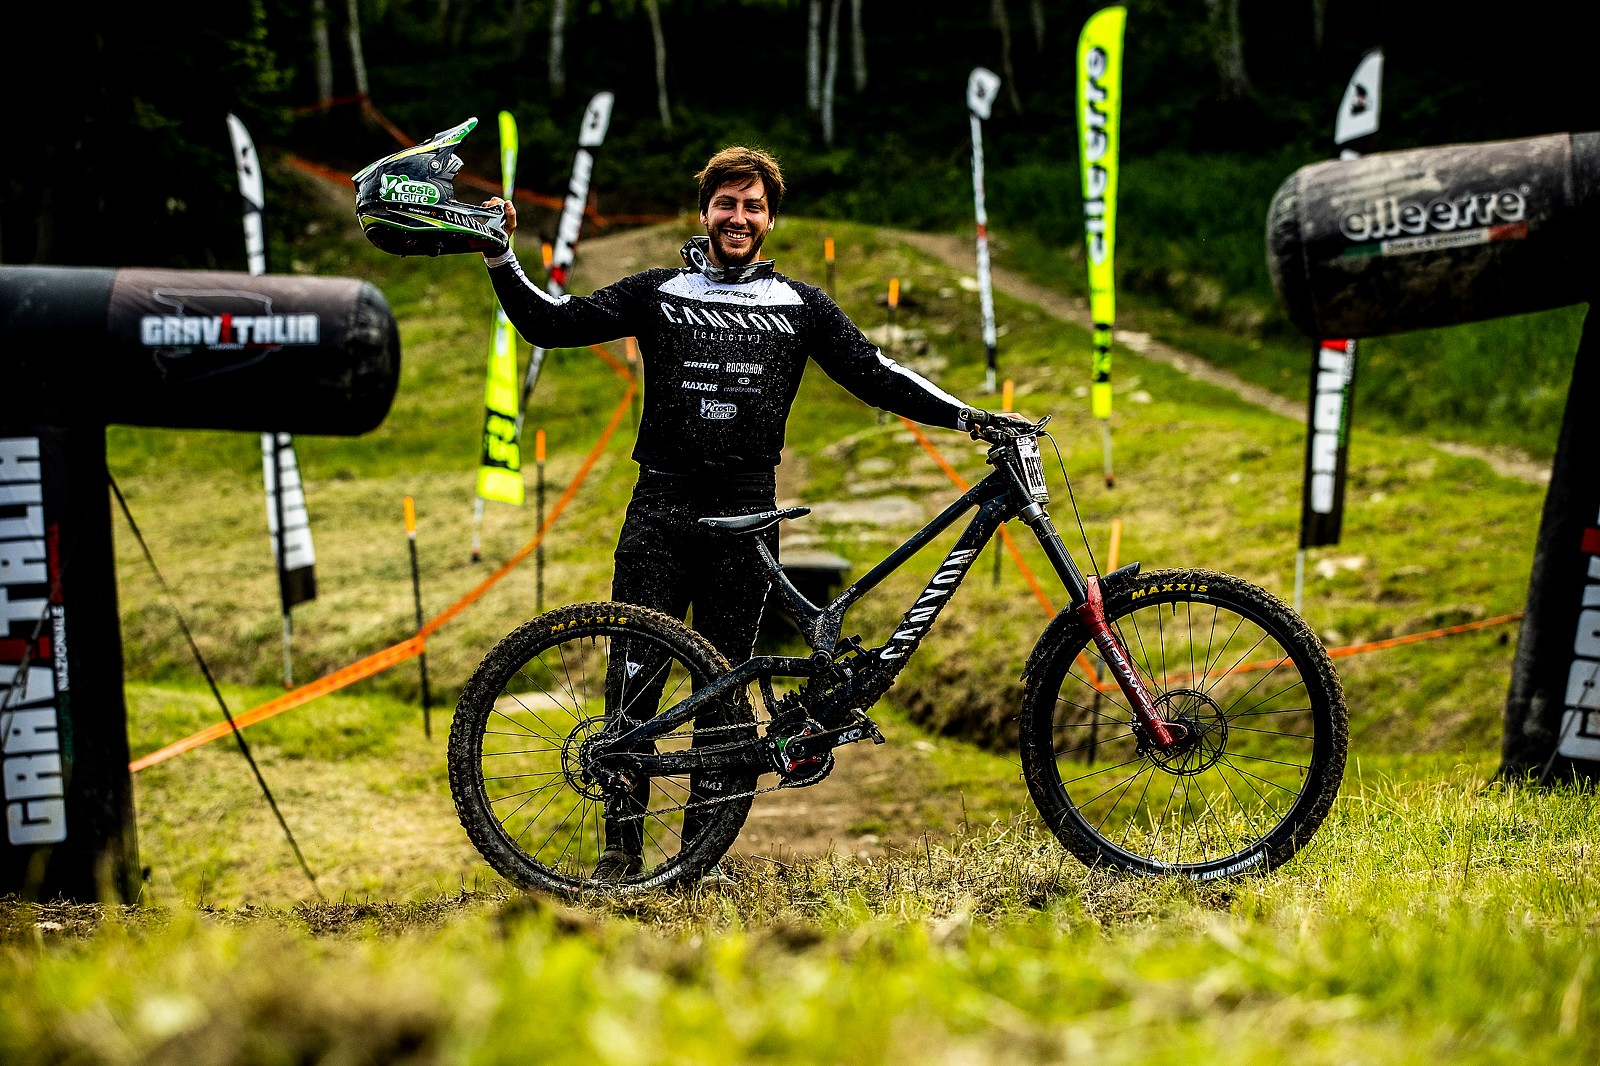 Loris Revelli With His Canyon Sender - Winner of Viola National DH - Loris Revelli's Canyon Sender with O-Chain - Mountain Biking Pictures - Vital MTB